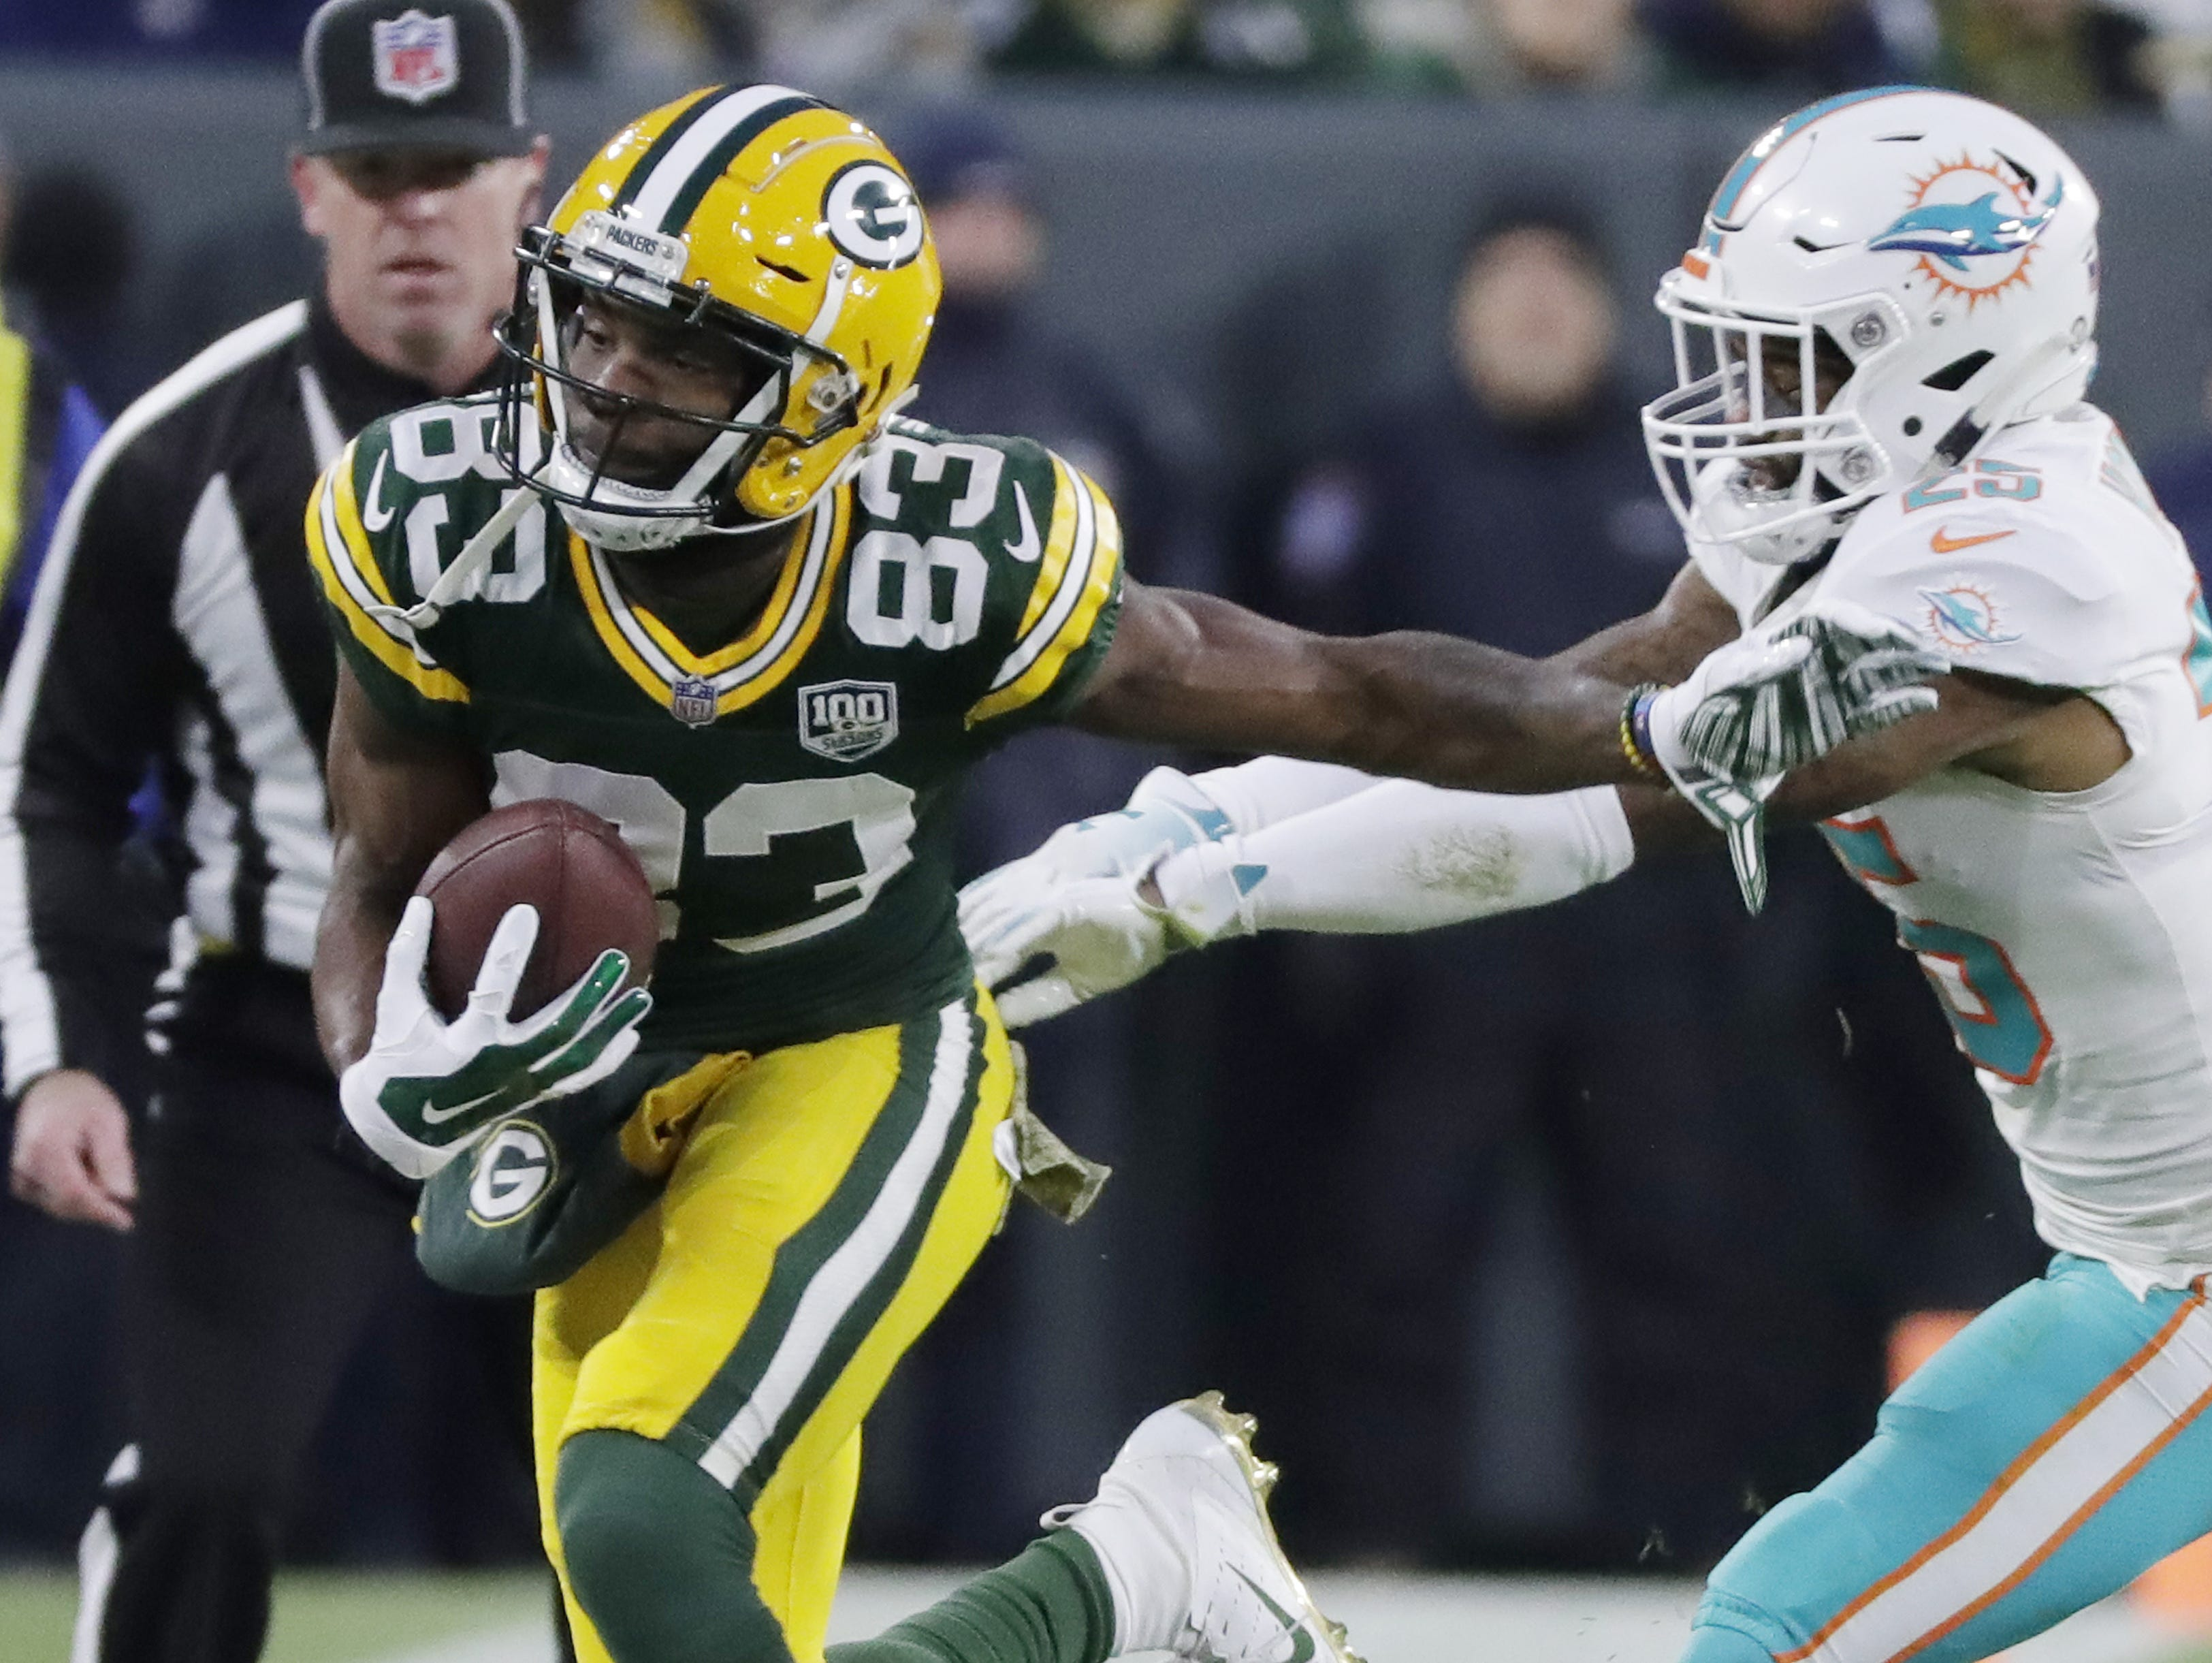 Green Bay Packers wide receiver Marquez Valdes-Scantling (83) is pushed out of bounds after a catch by Miami Dolphins cornerback Xavien Howard (25) in the second quarter at Lambeau Field on Sunday, November 11, 2018 in Green Bay, Wis. Adam Wesley/USA TODAY NETWORK-Wisconsin